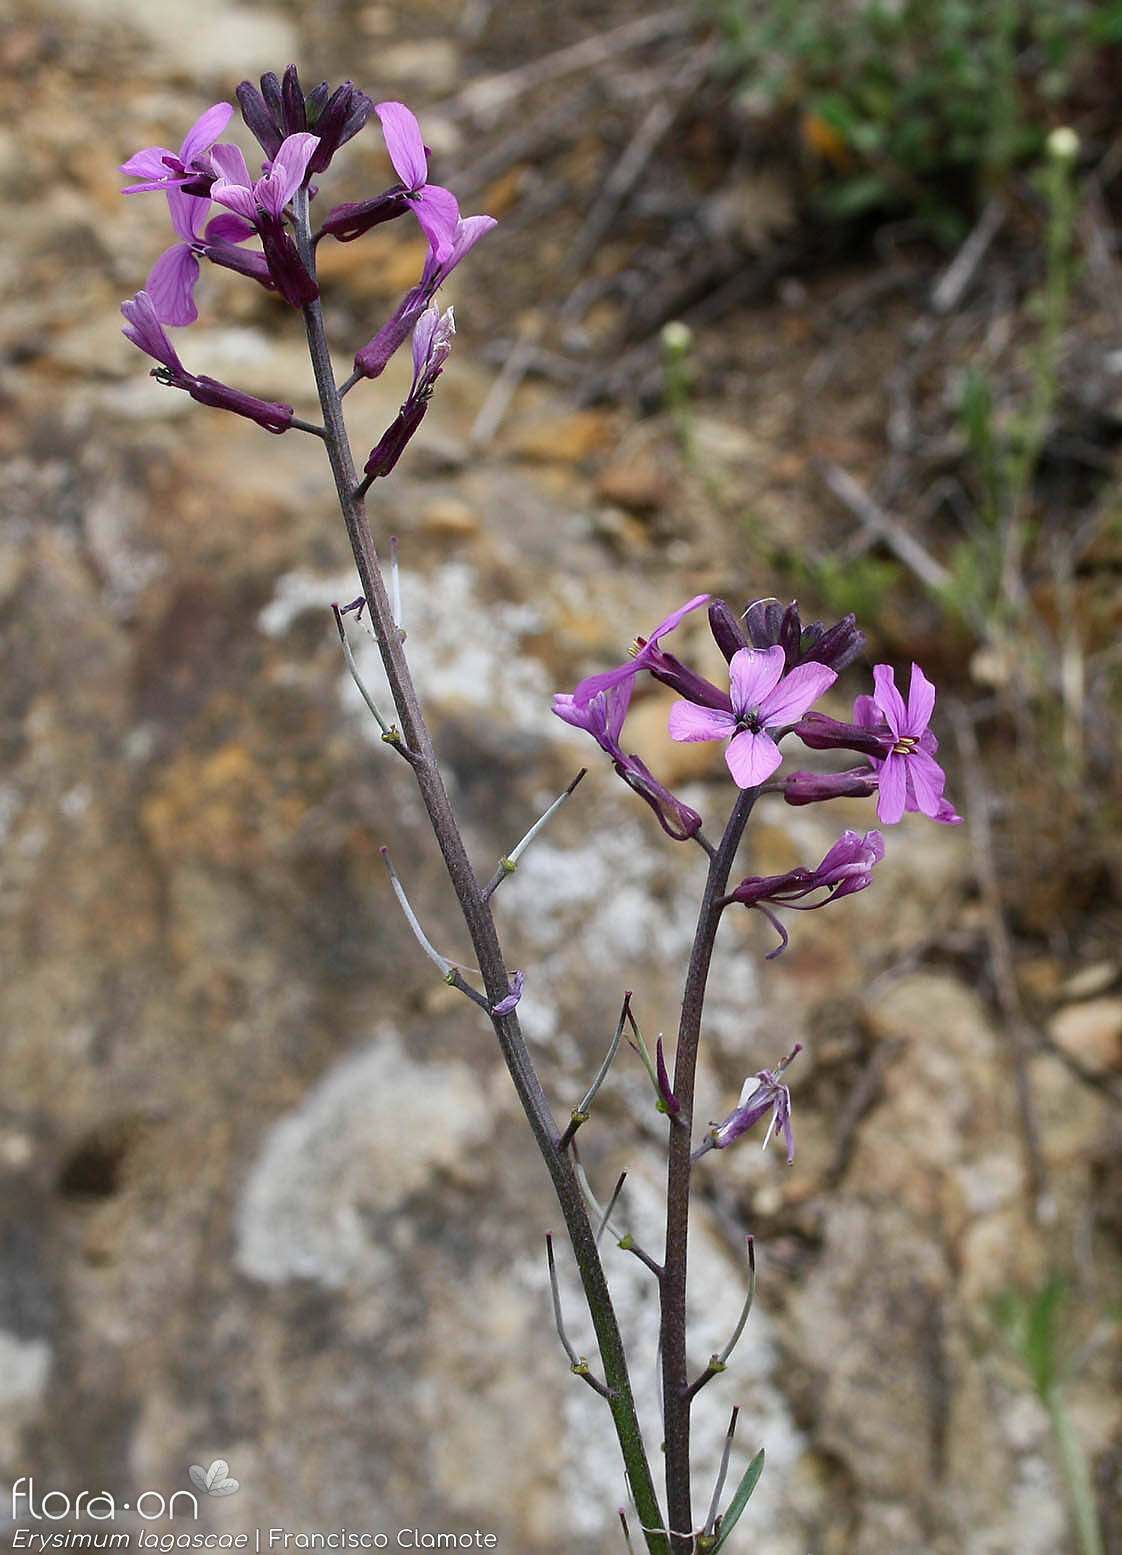 Erysimum lagascae - Flor (geral) | Francisco Clamote; CC BY-NC 4.0